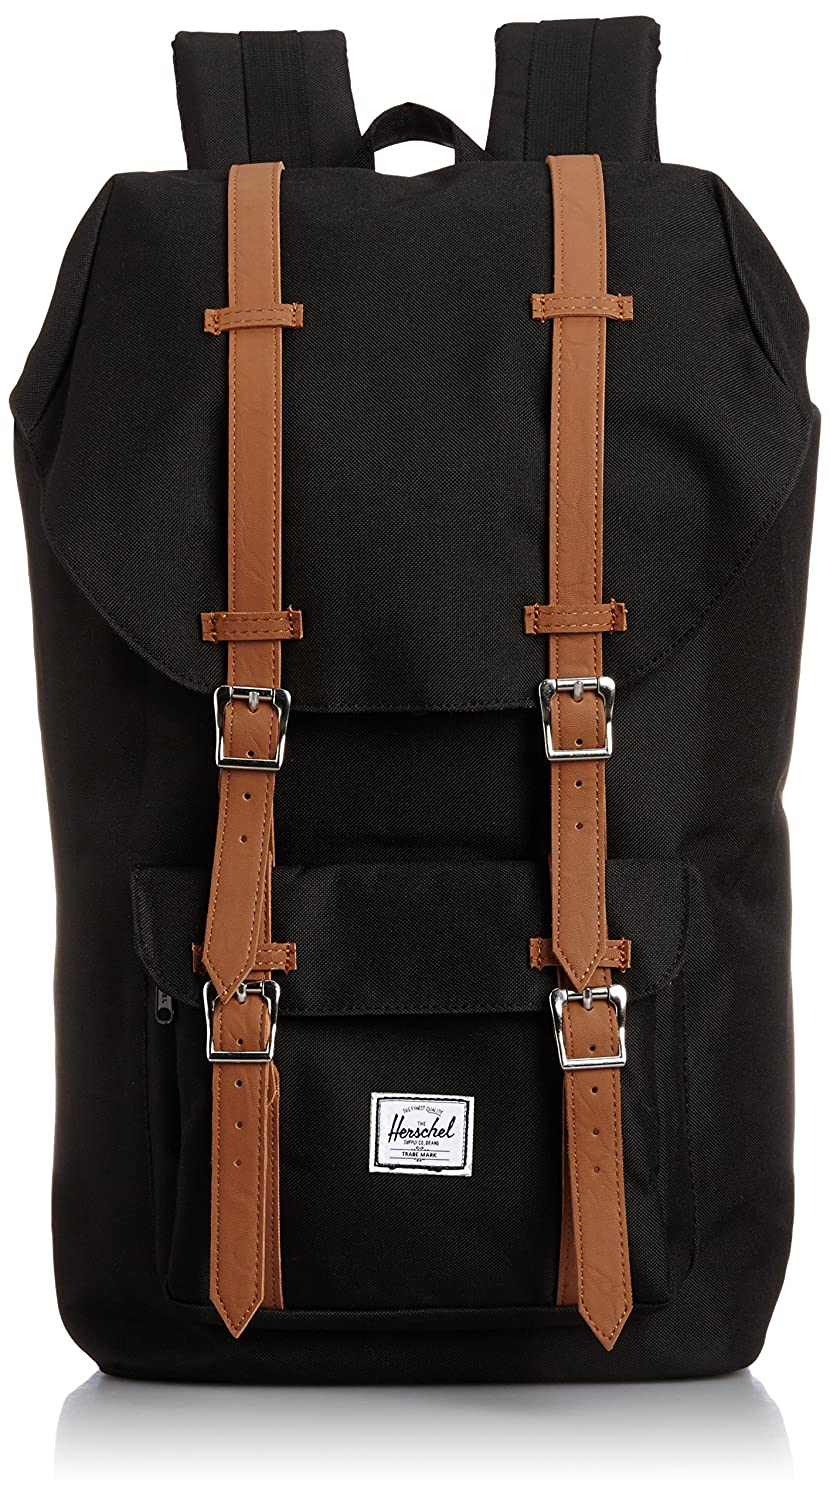 5. Herschel Supply Co. Little America Backpack, Black, One Size